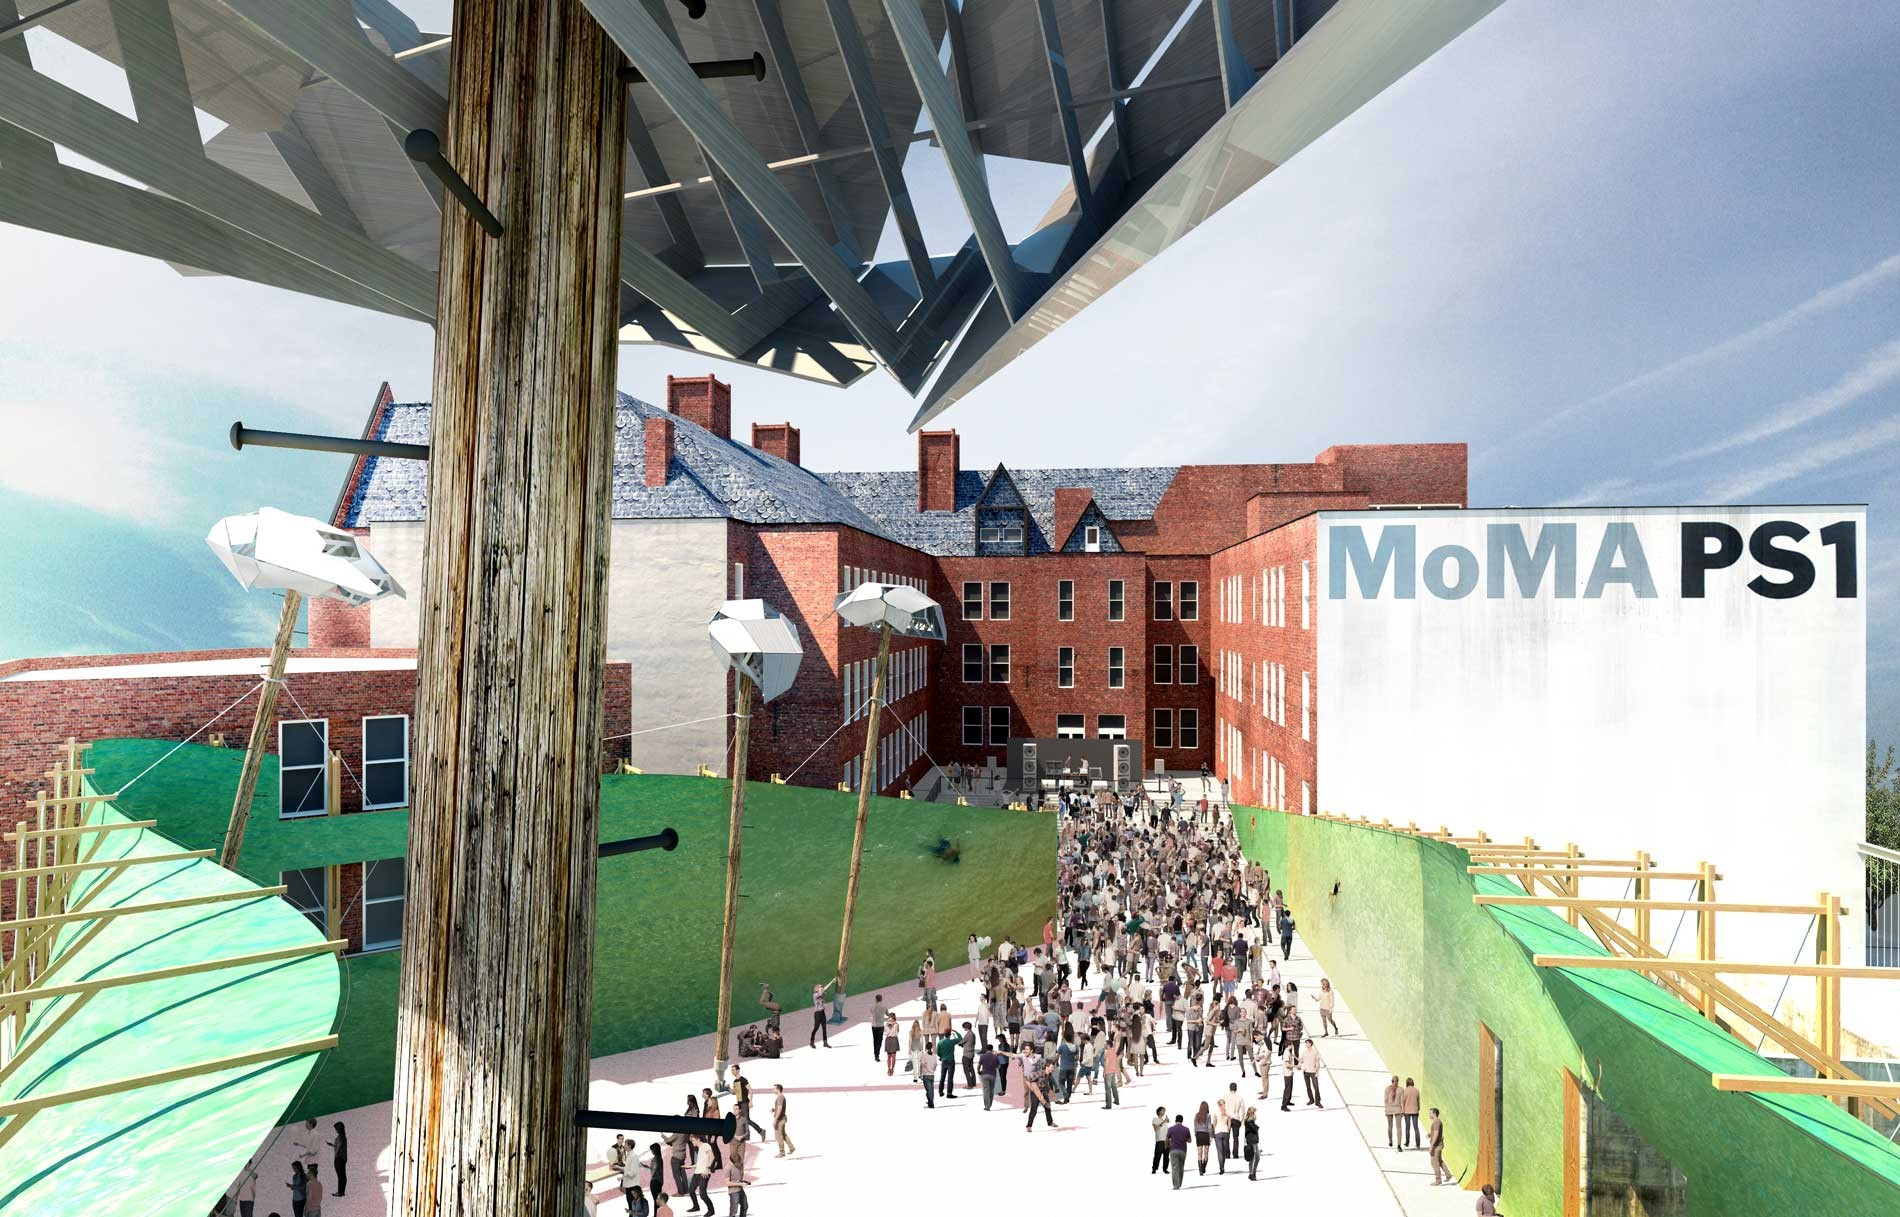 MoMA PS1 YAP 2015 Runner-up: Drones' Beach / Brillhart Architecture, Courtesy of Brillhart Architecture